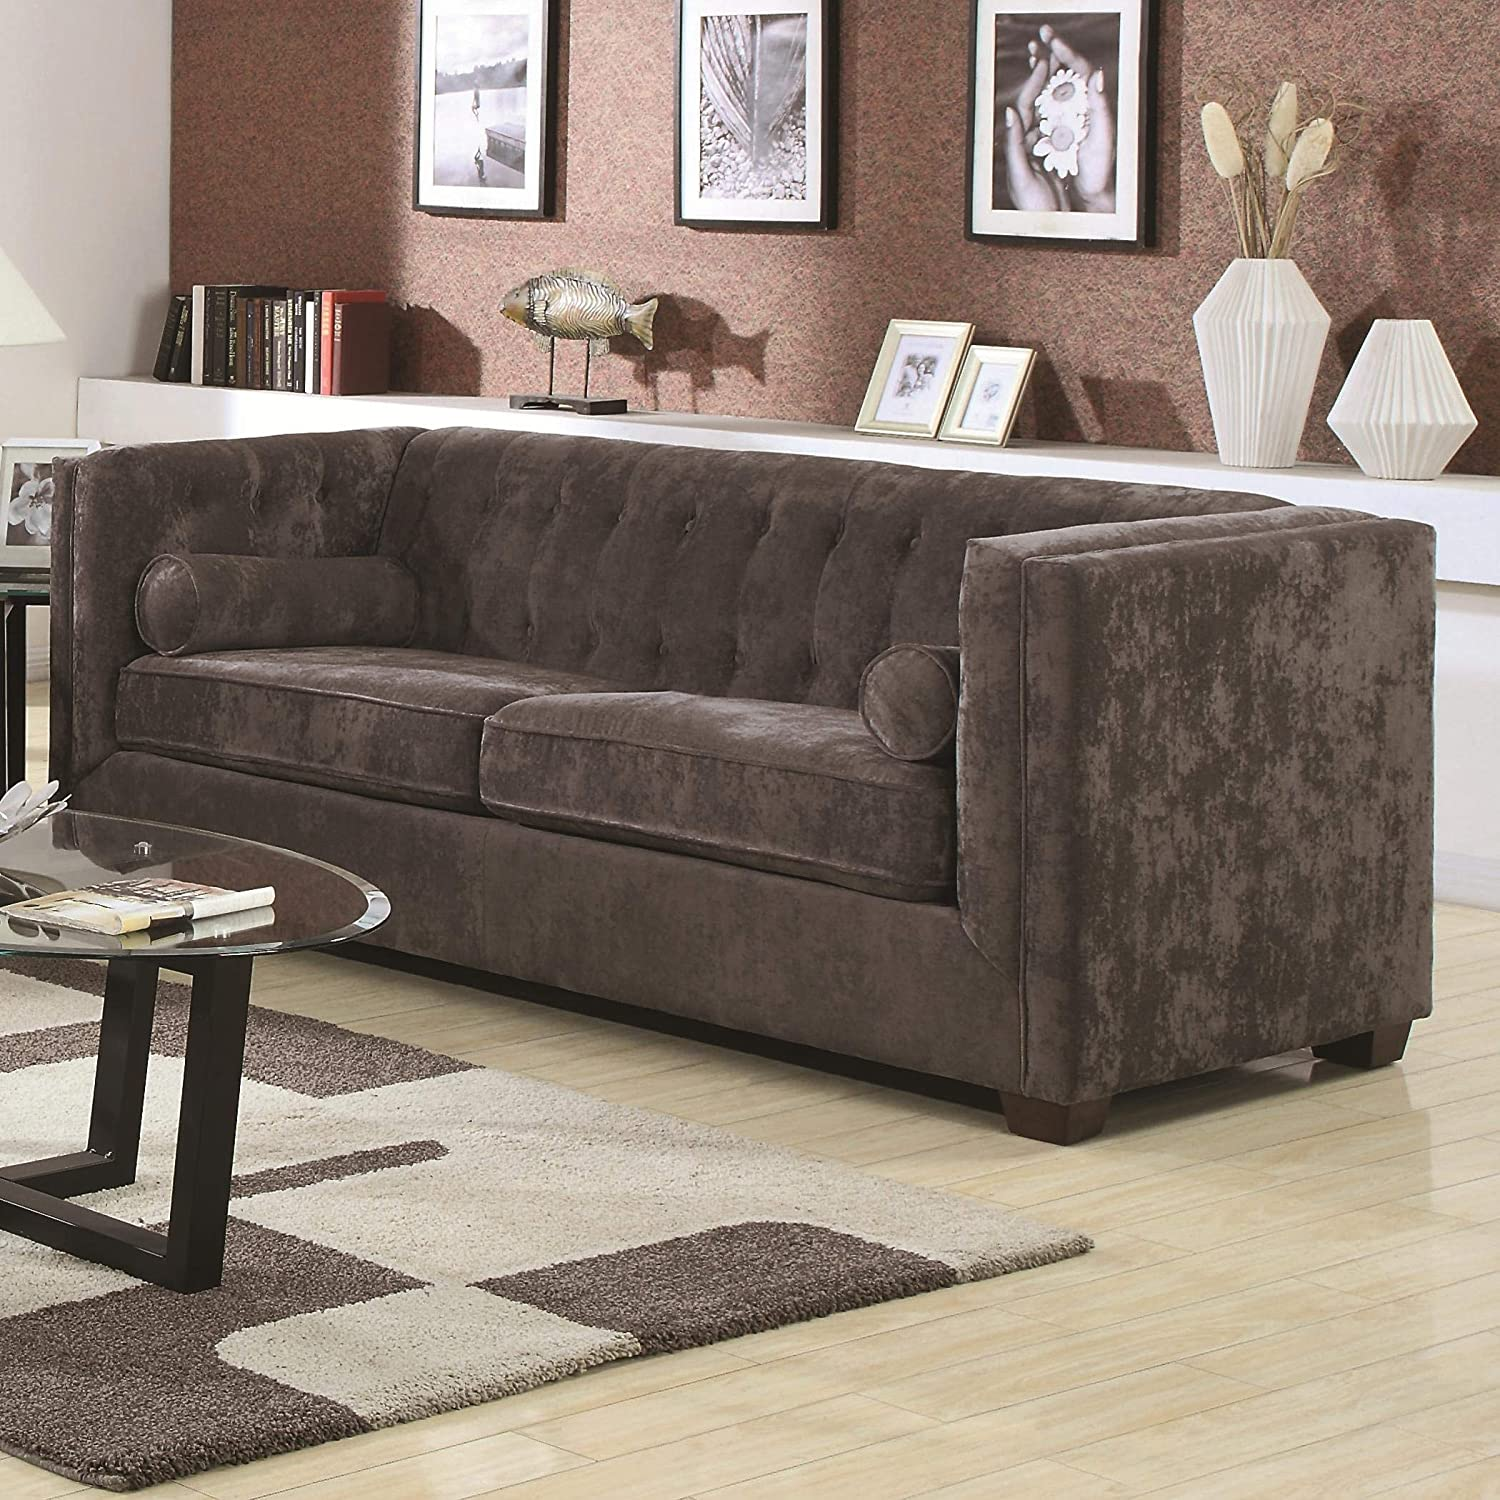 Amazon com alexis chesterfield sofa with track arms charcoal kitchen dining